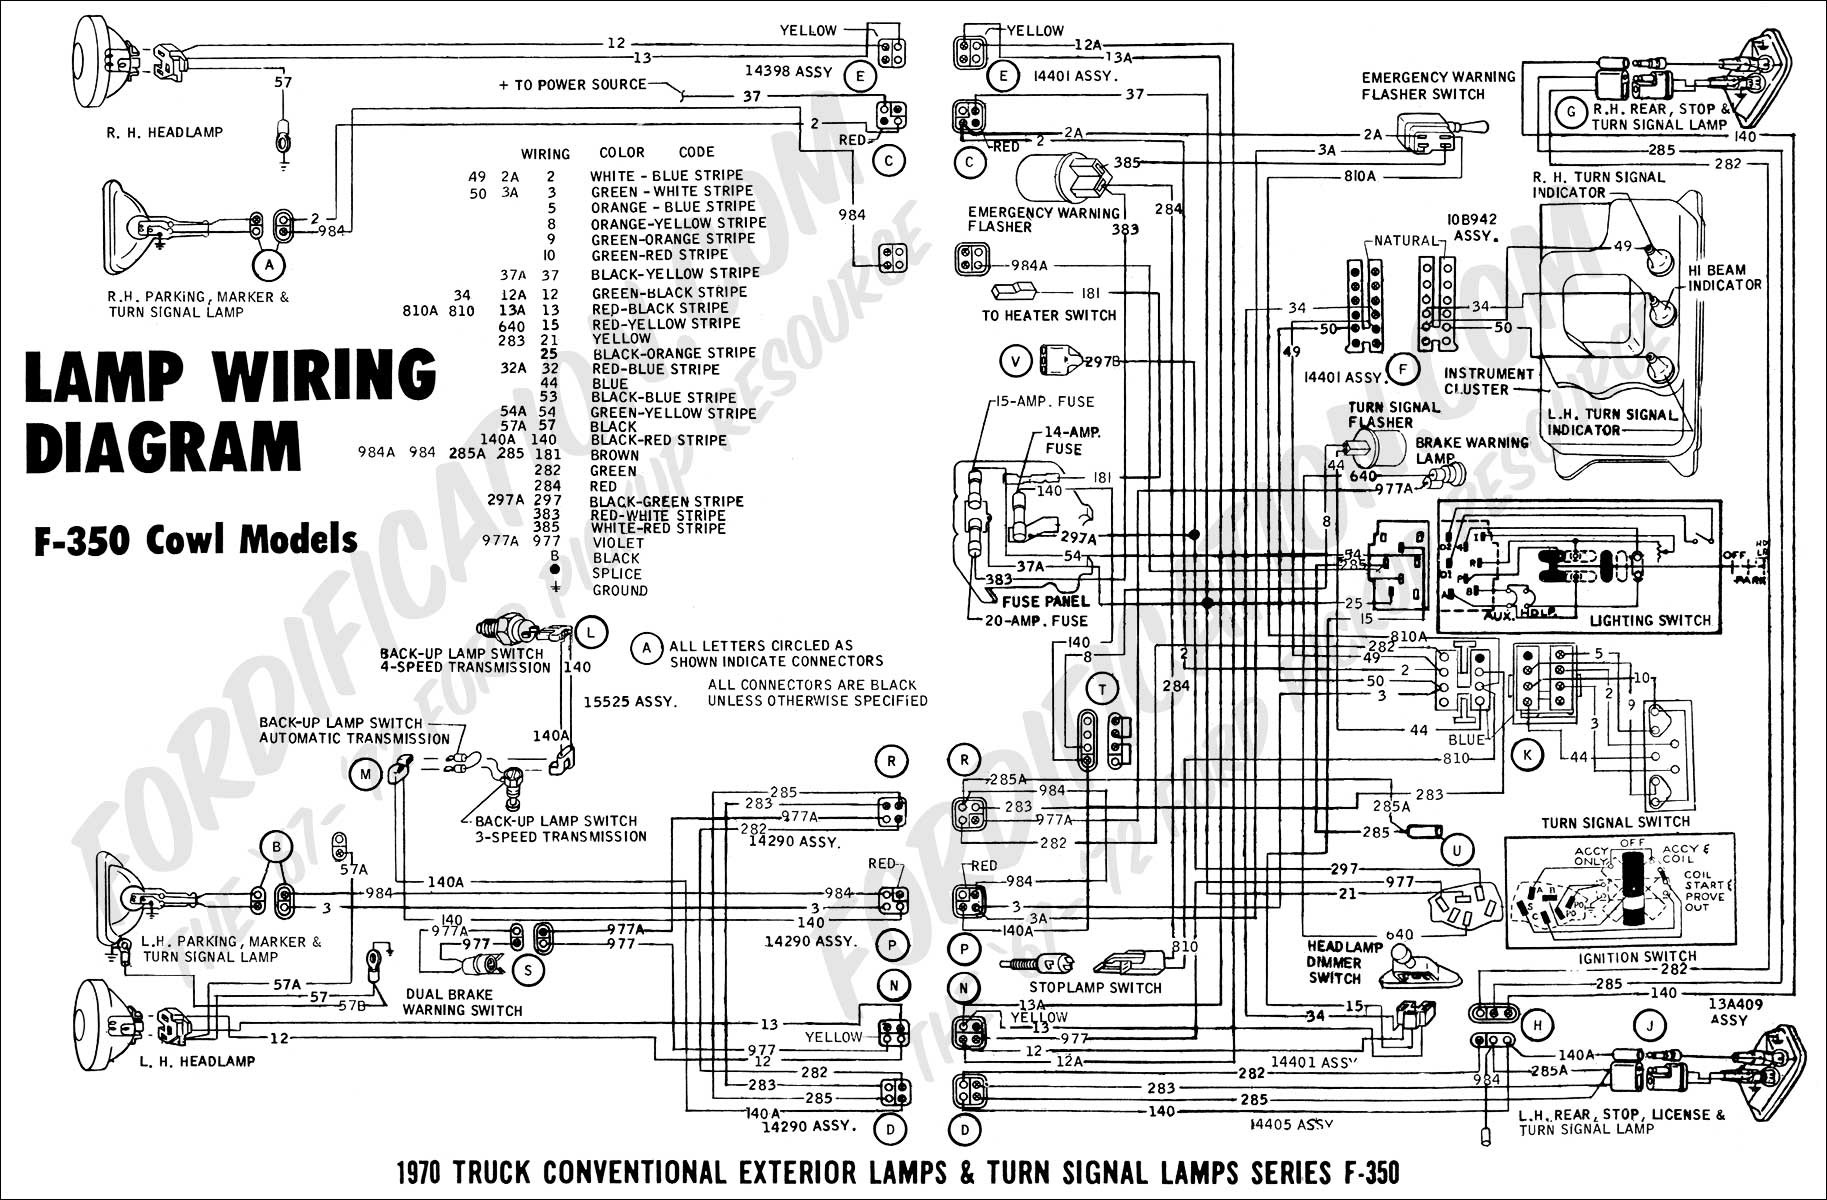 Ford F250 Trailer Wiring Diagram F750 Wiring Diagram Headlamp to Her with 99 ford F 350 Wiring Of Ford F250 Trailer Wiring Diagram